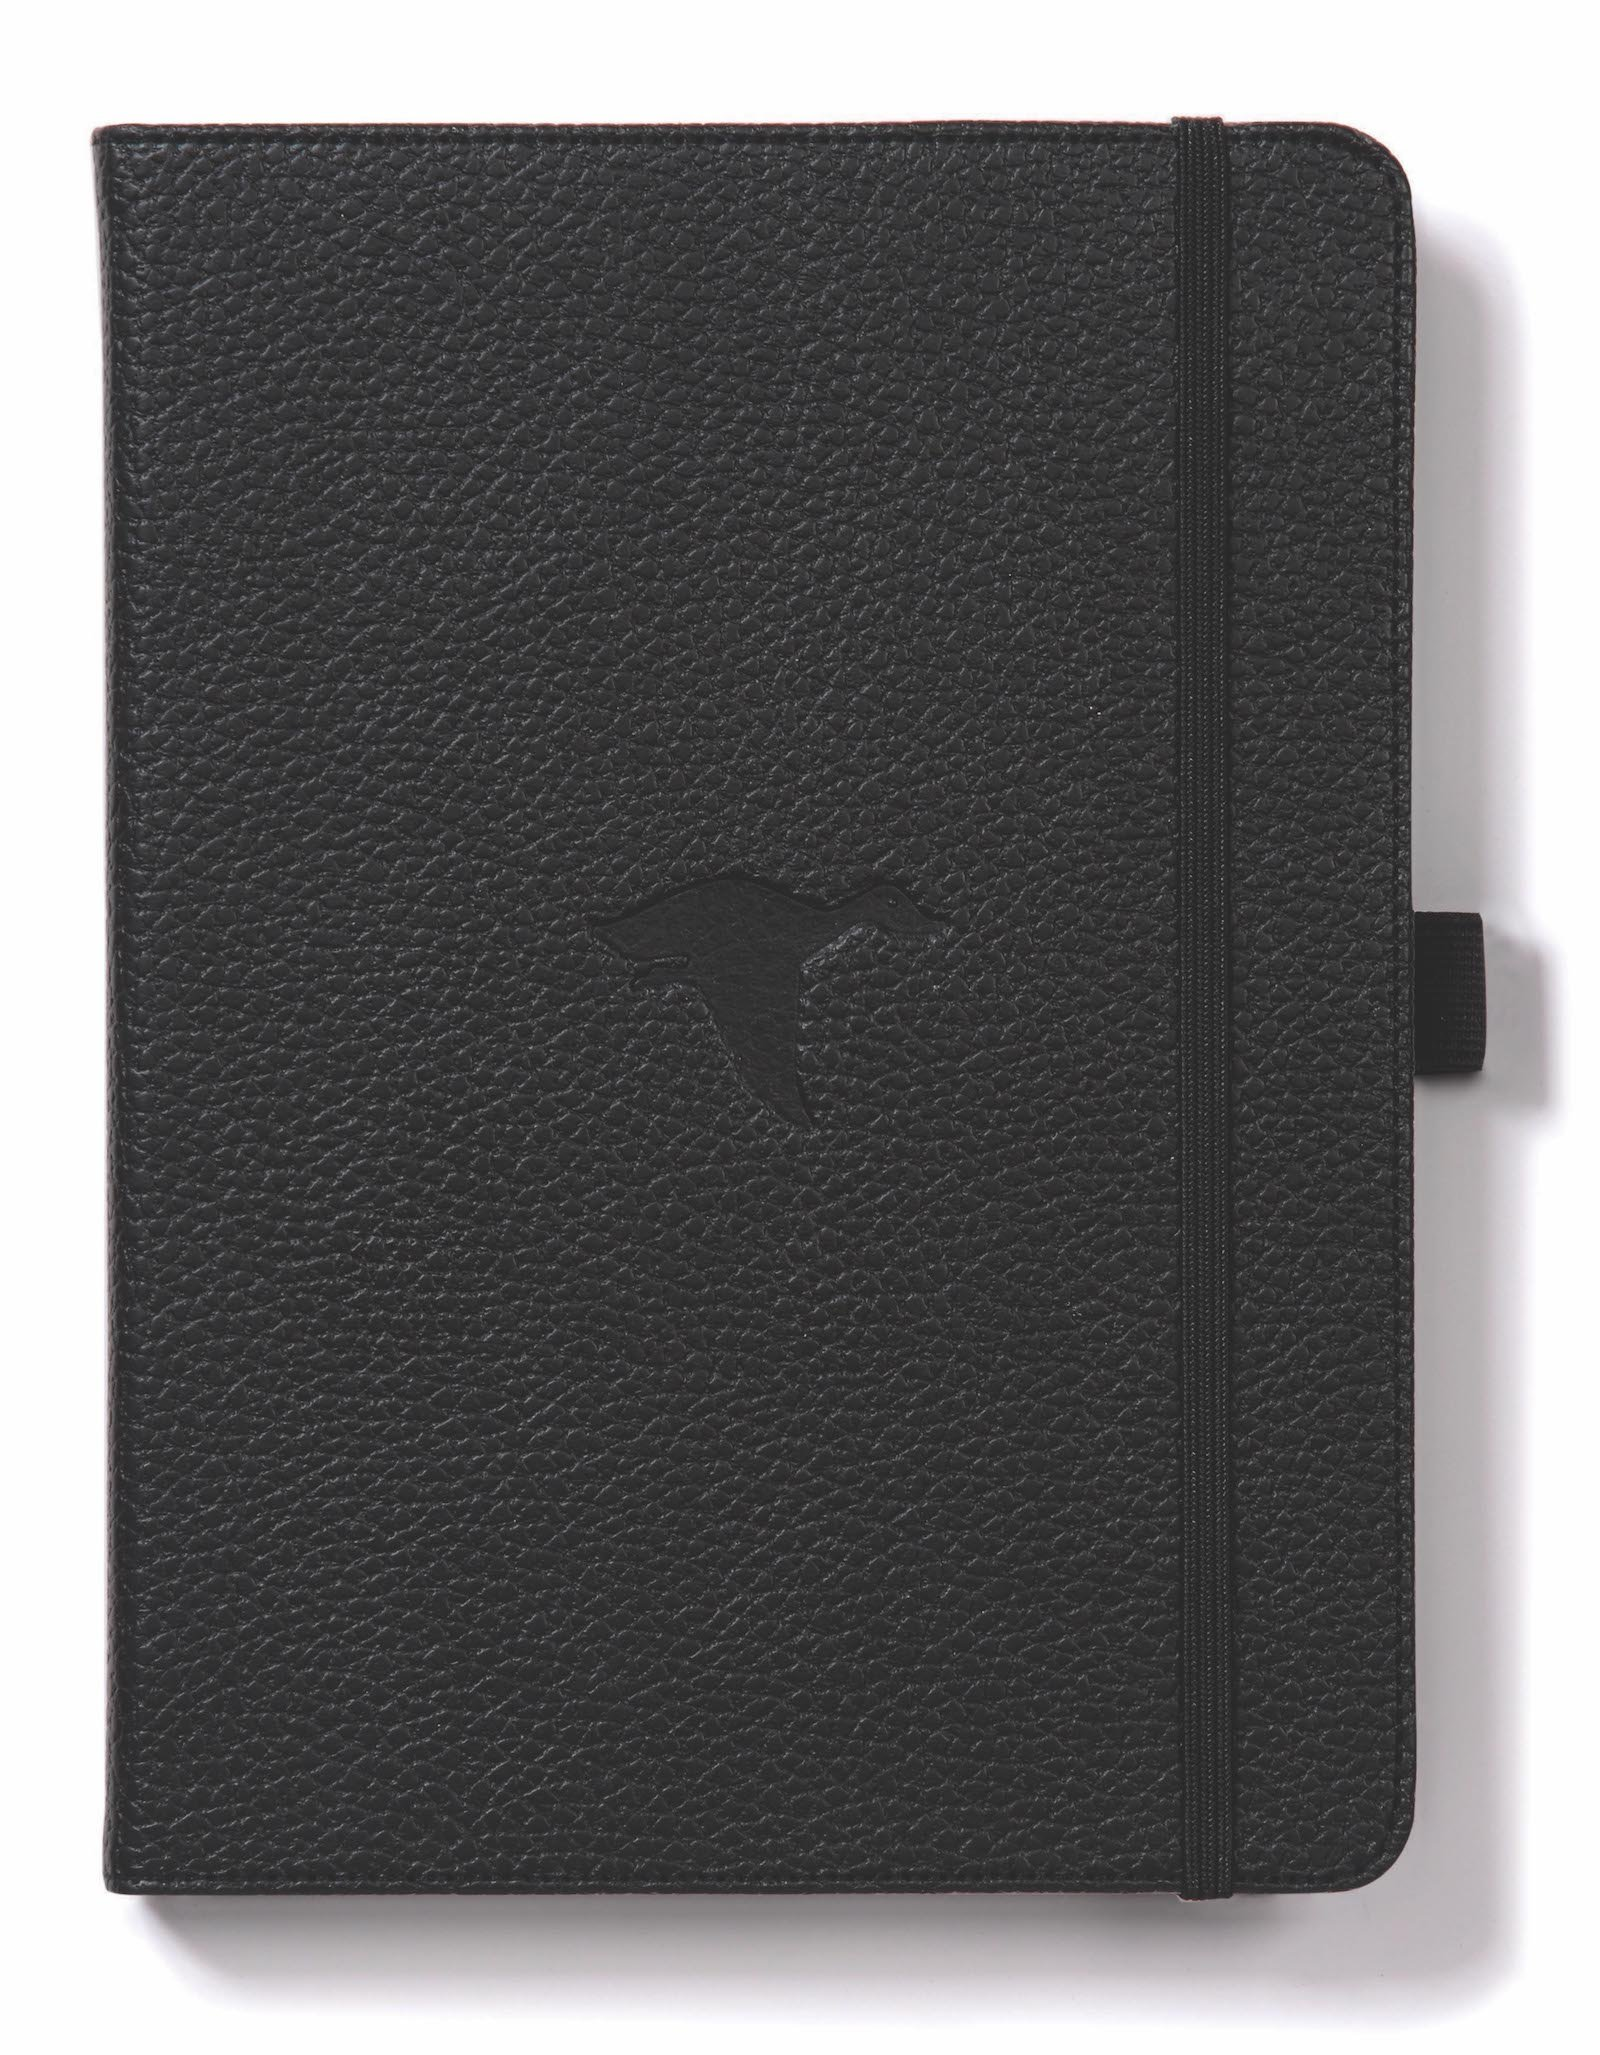 Dingbats Wildlife Medium A5+ (6.3 x 8.5) Hardcover Notebook - PU Leather, Micro-Perforated 100gsm Cream Pages, Inner Pocket, Elastic Closure, Pen Holder, Bookmark (Dot Grid, Black Duck)